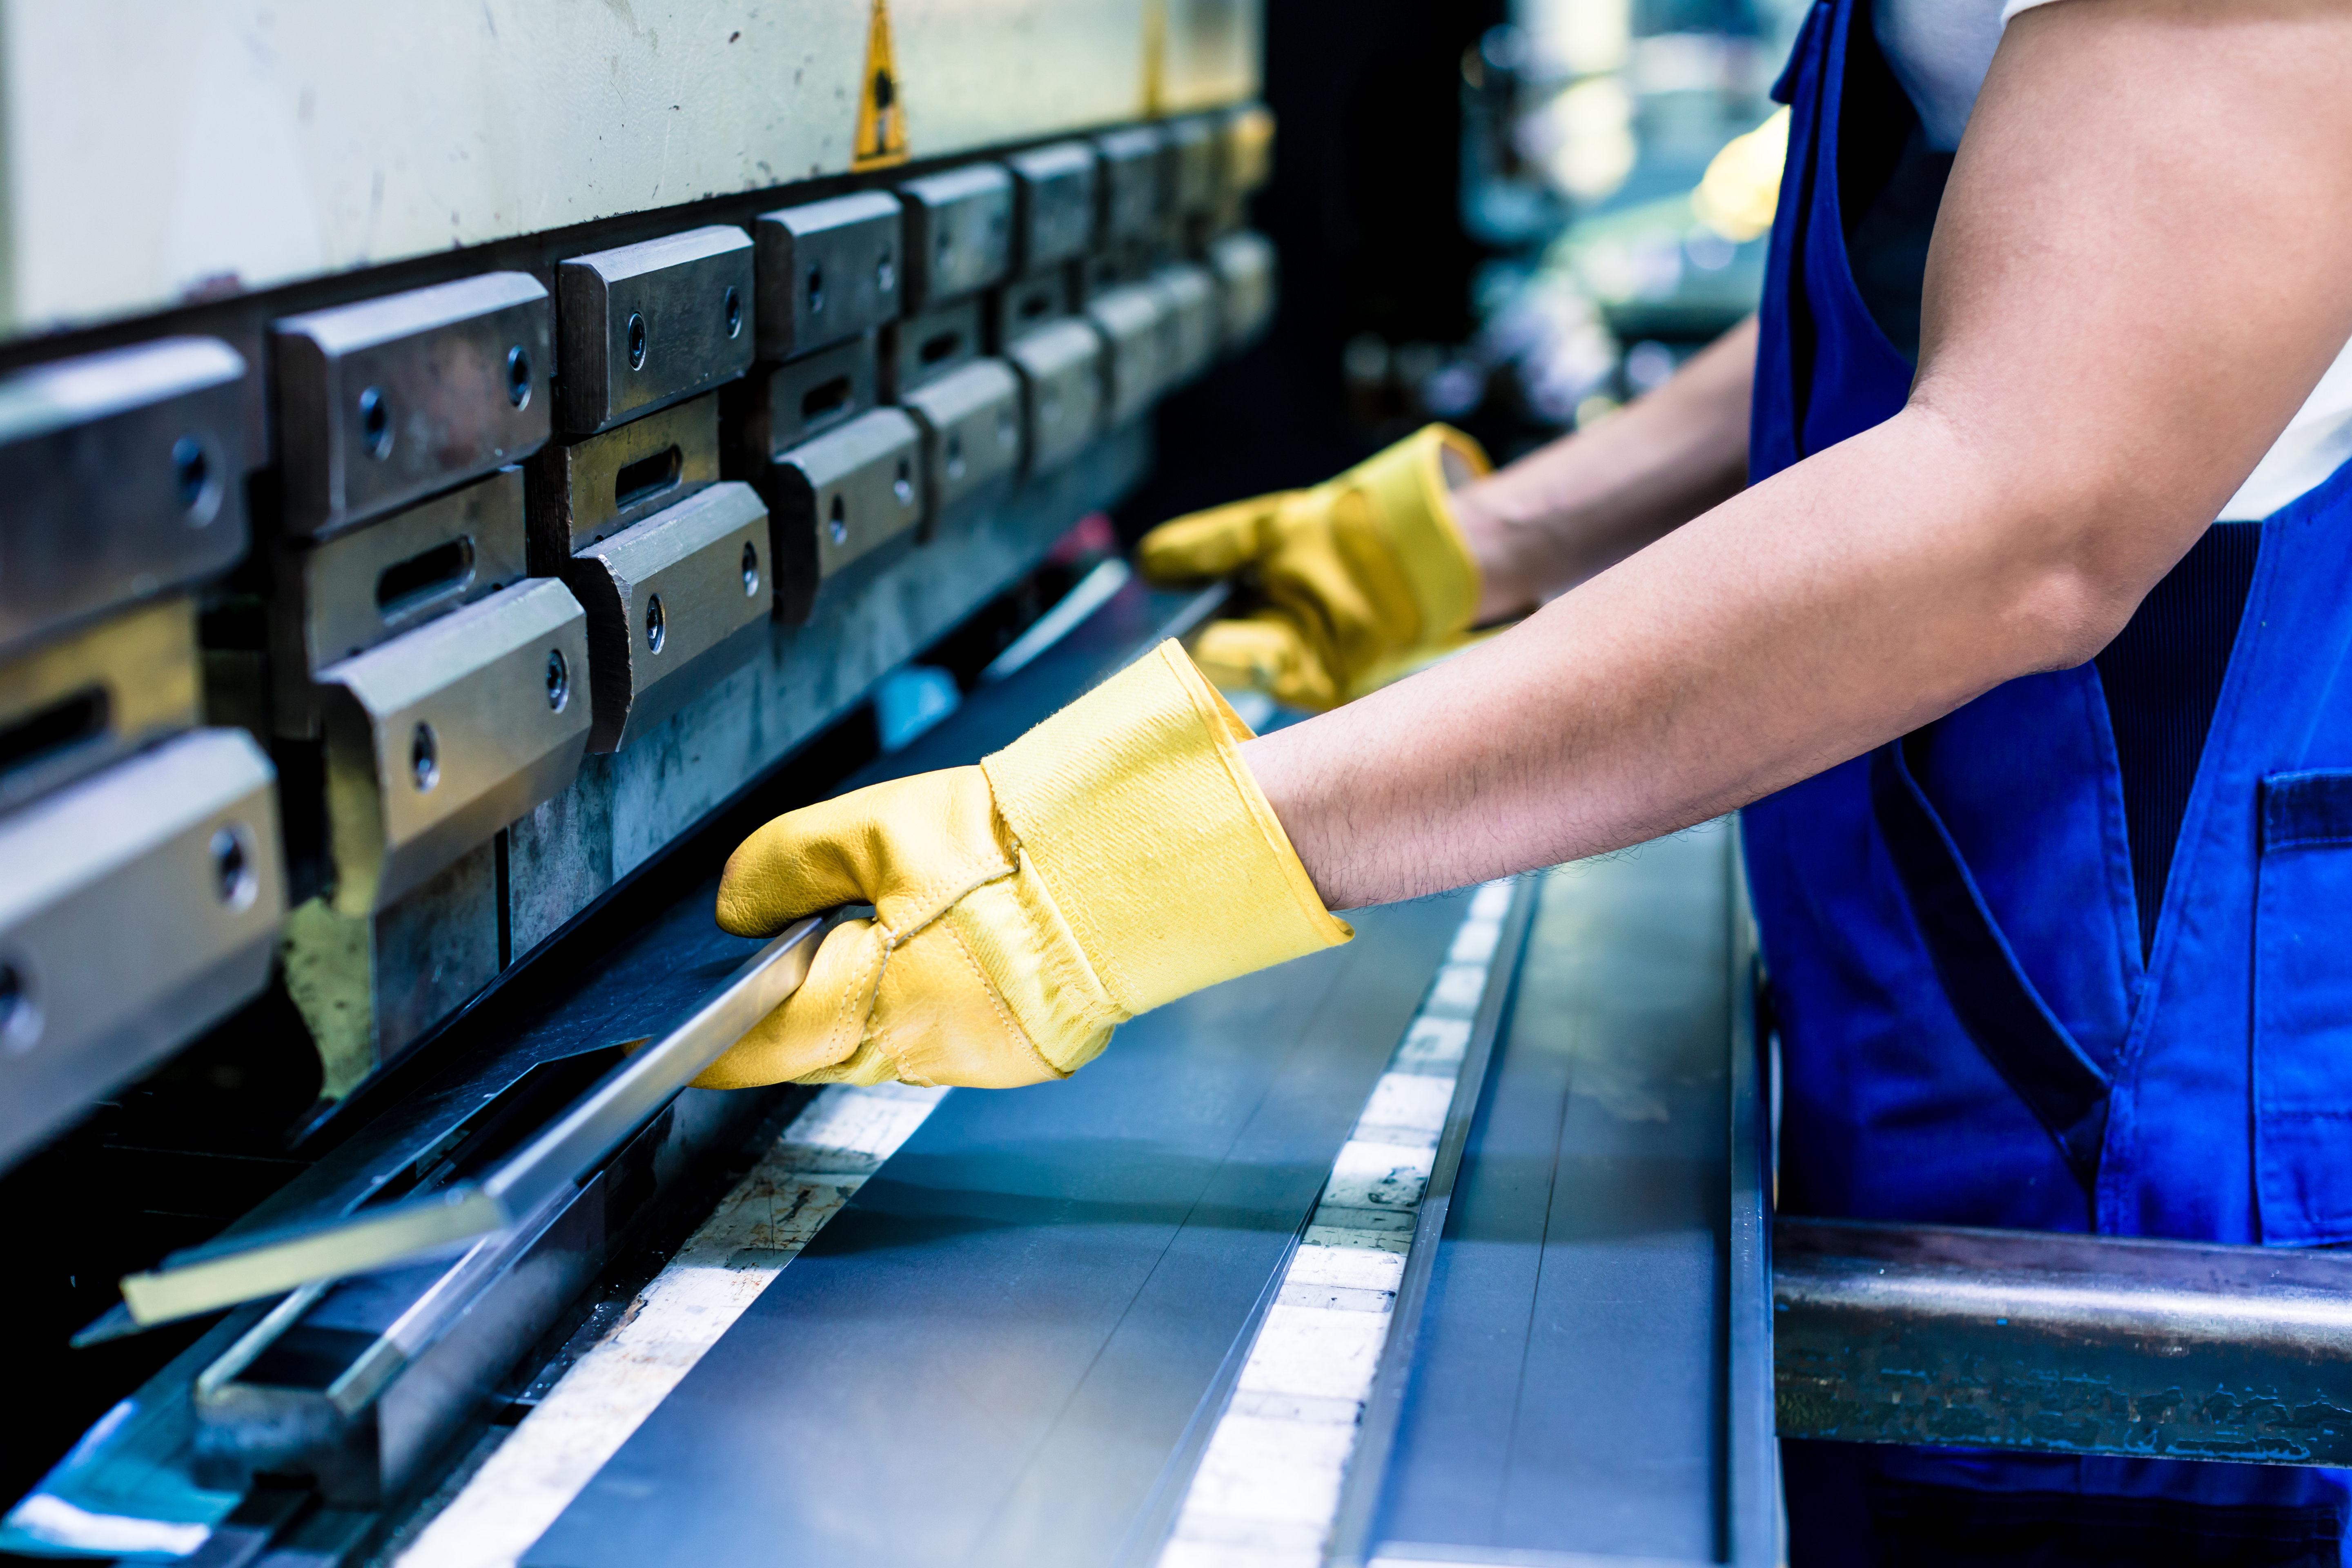 Worker placing the metal in the machine for pressing